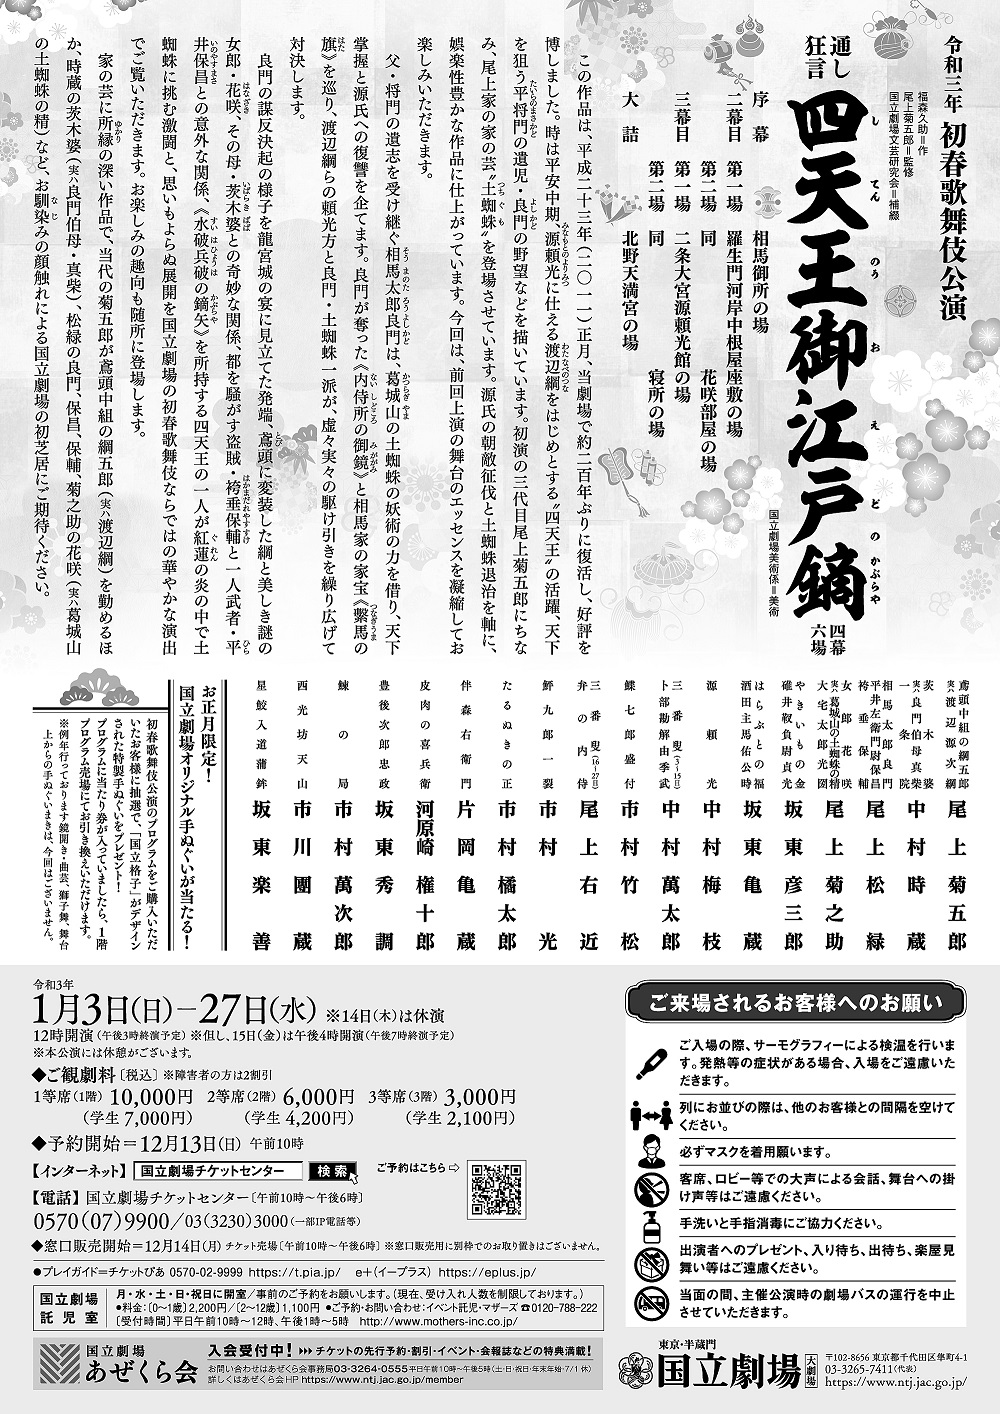 National theater early spring, 2021 Kabuki performance